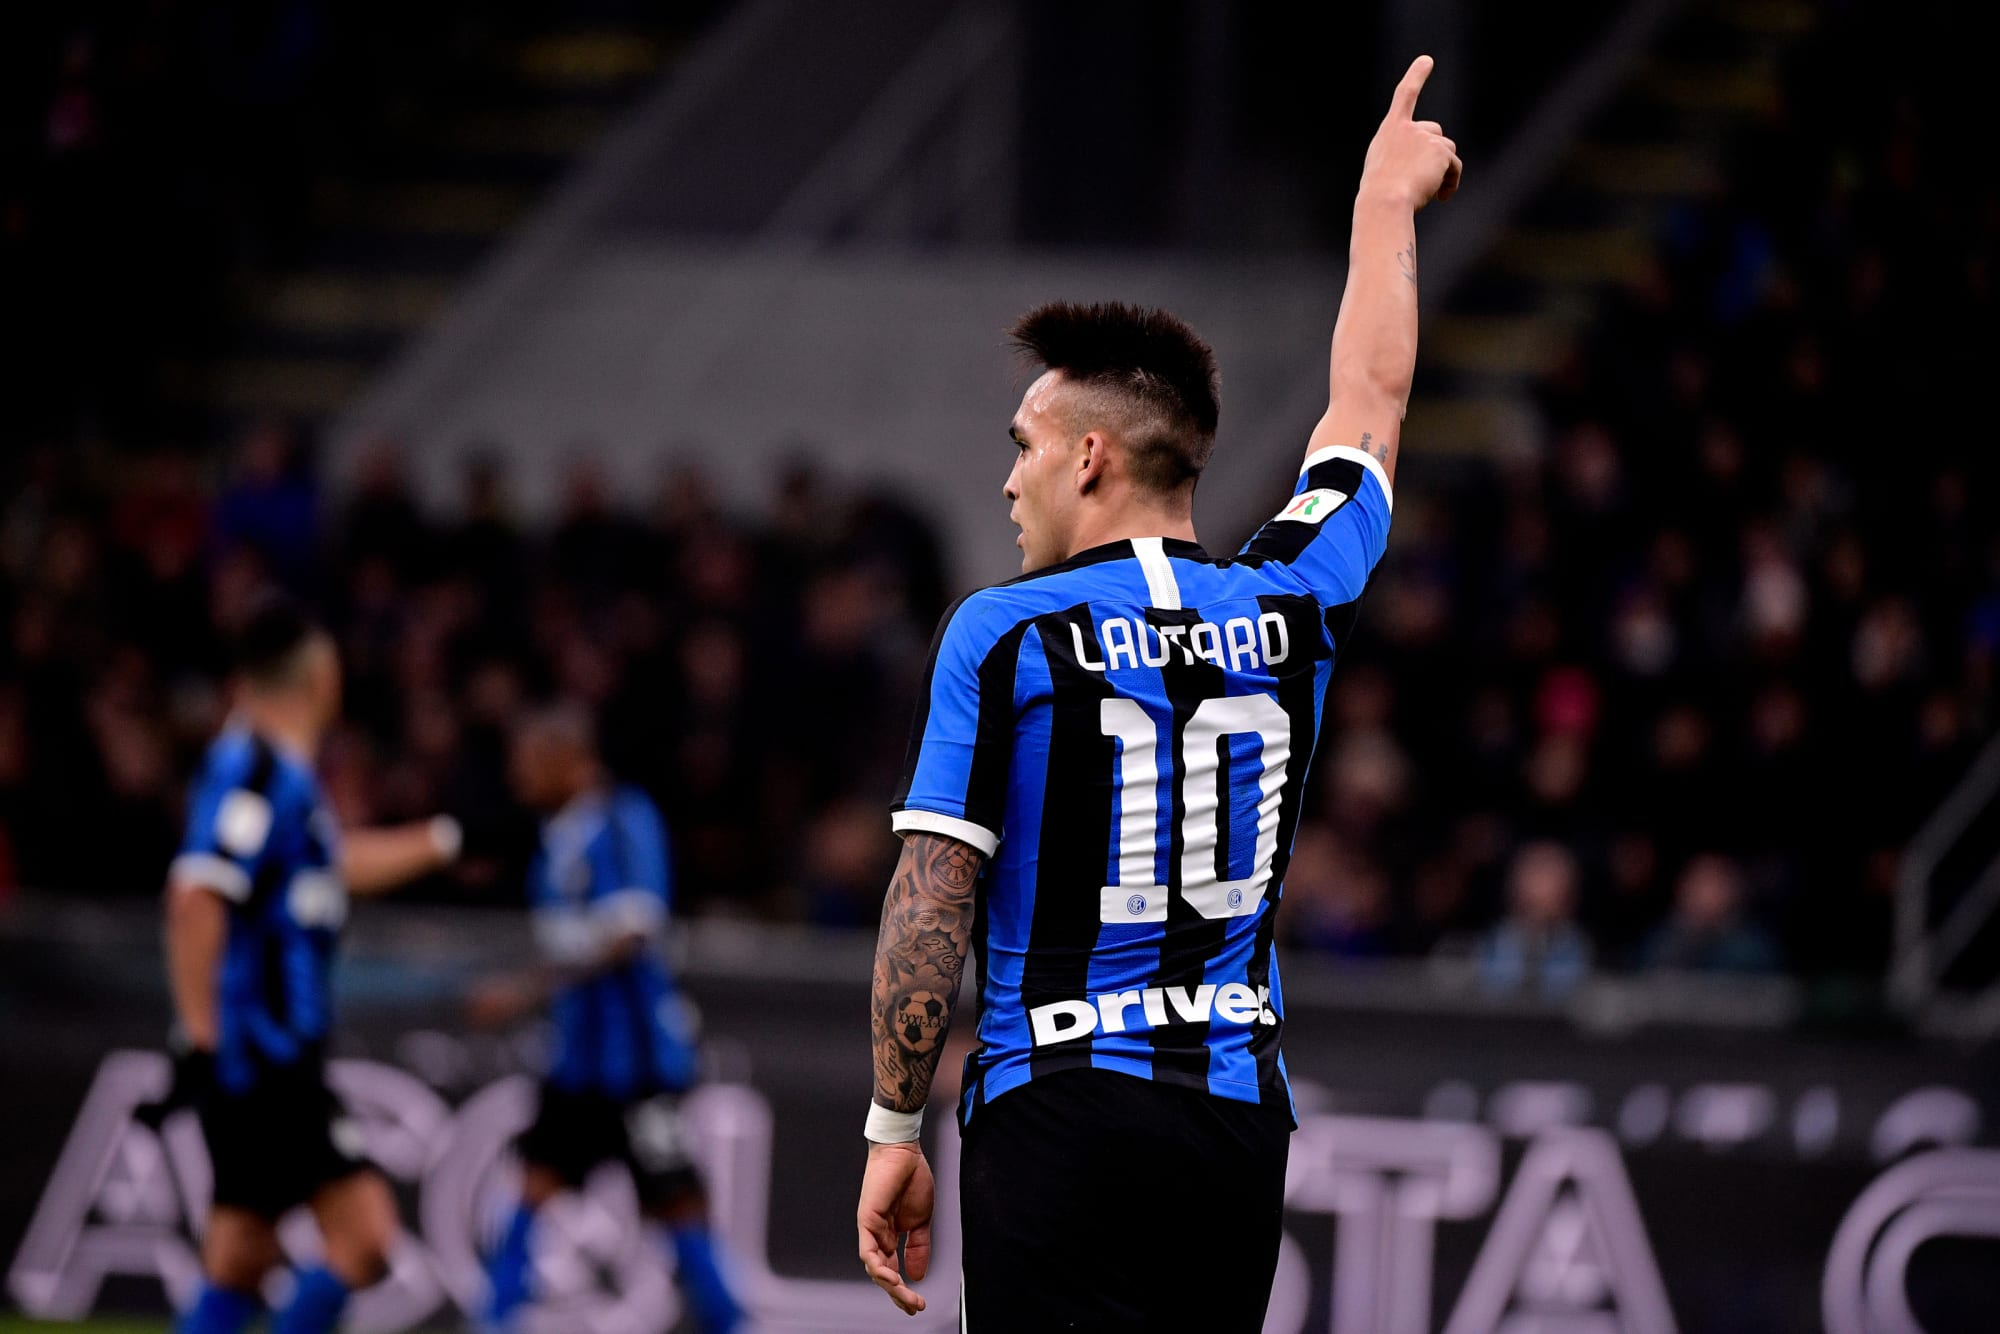 Barcelona's flop signing to torpedo the arrival of Lautaro Martinez